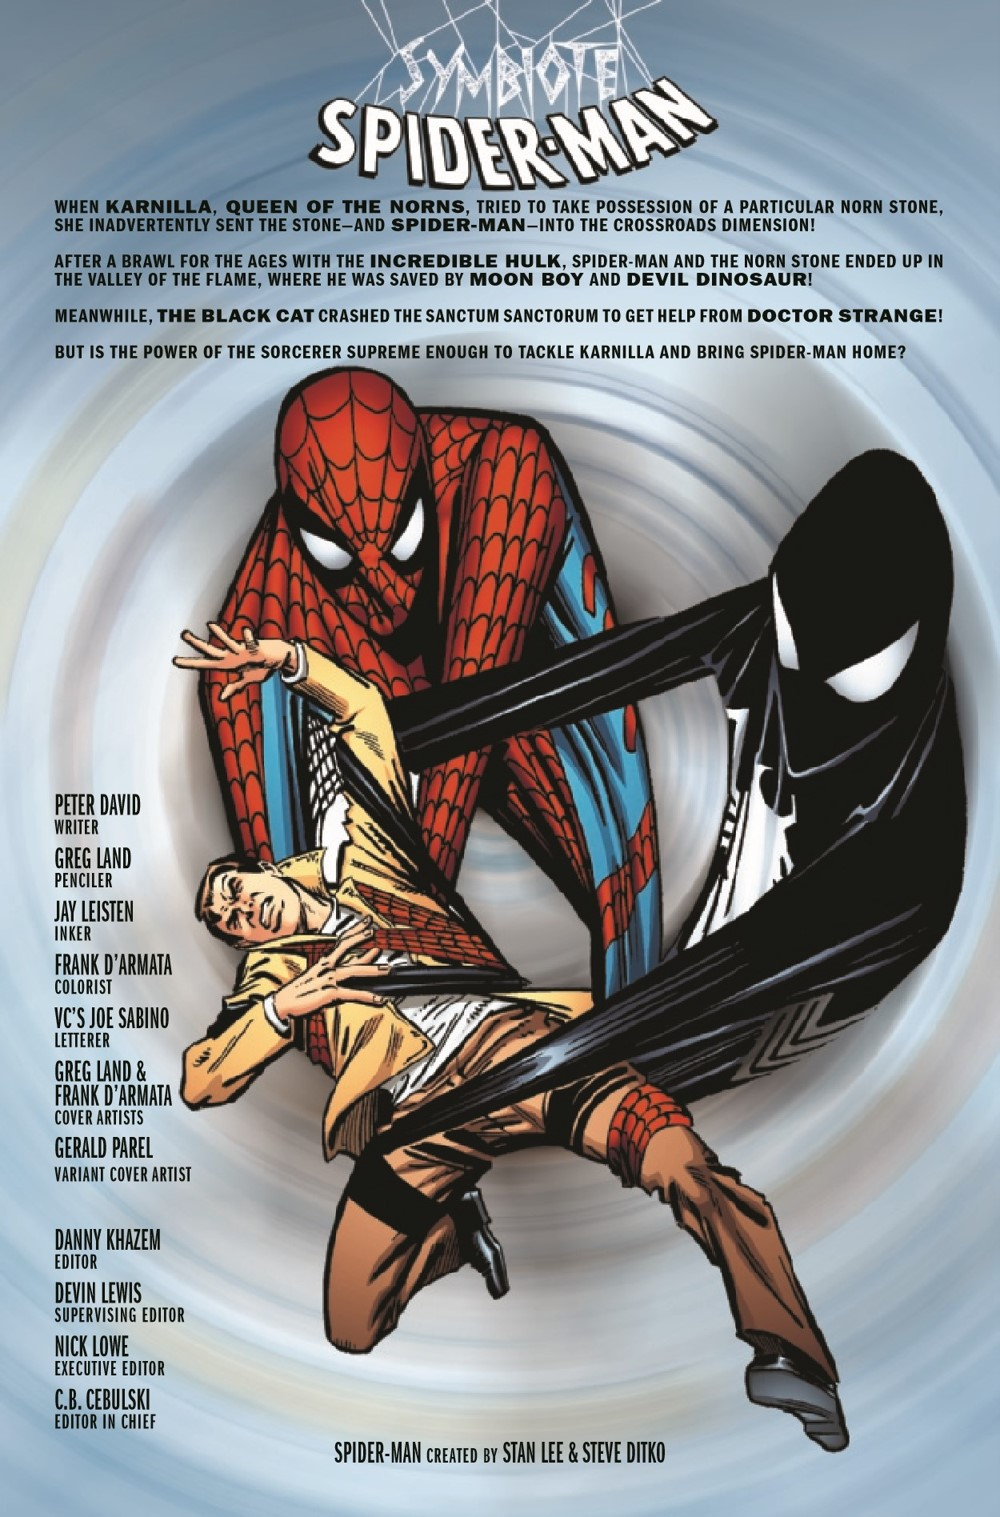 SYMBIOTESMCR2021003_Preview-2 ComicList Previews: SYMBIOTE SPIDER-MAN CROSSROADS #3 (OF 5)